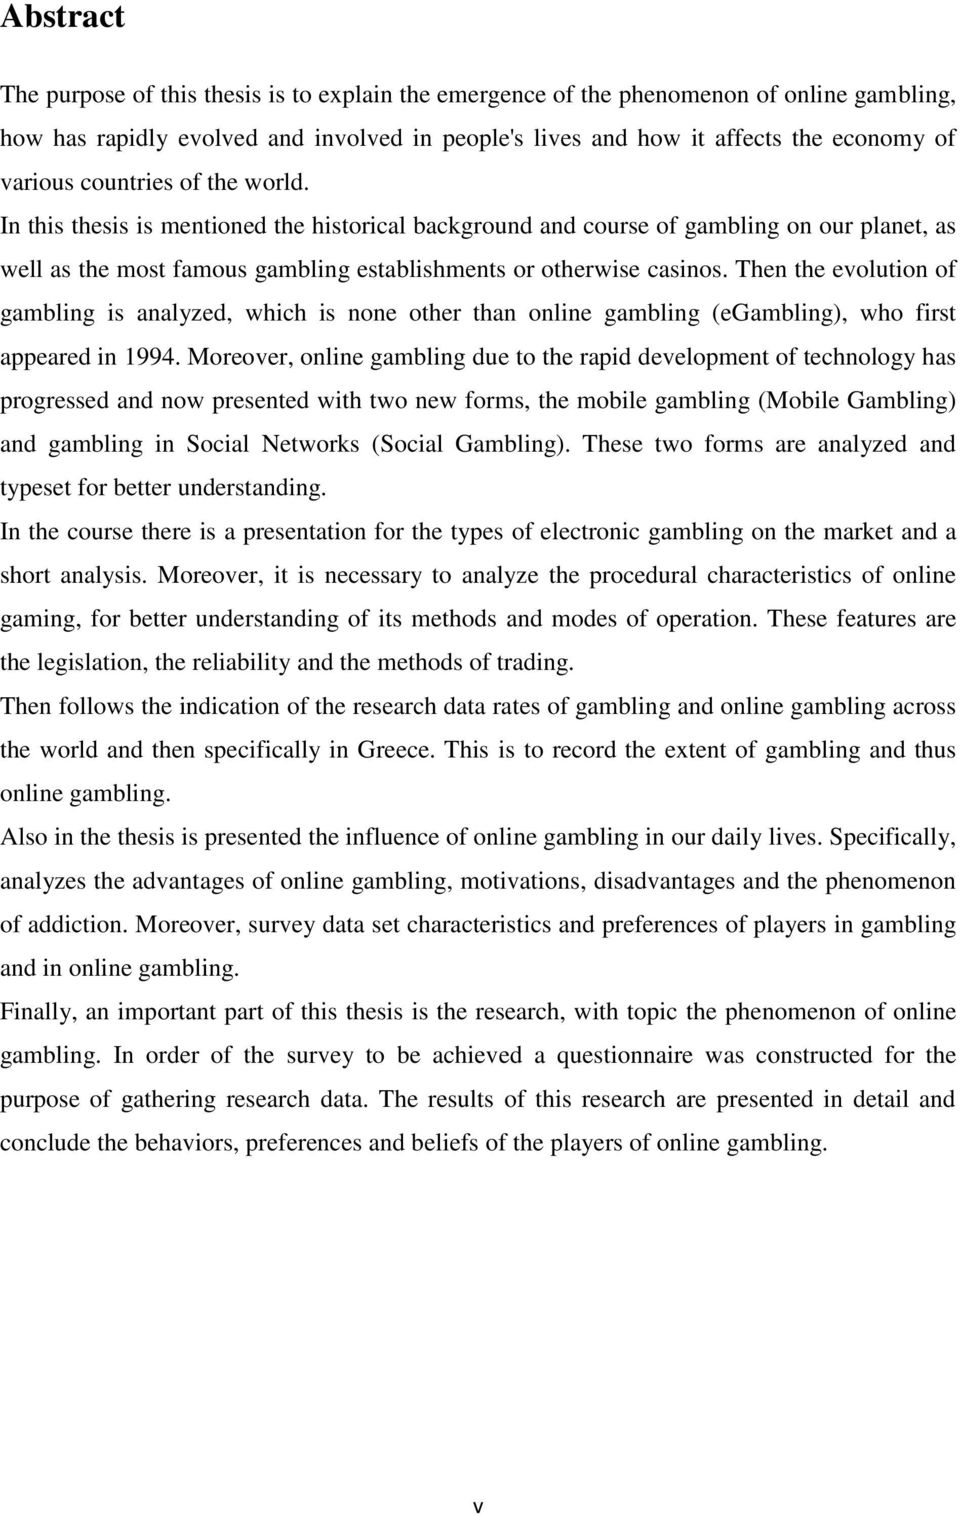 Then the evolution of gambling is analyzed, which is none other than online gambling (egambling), who first appeared in 1994.